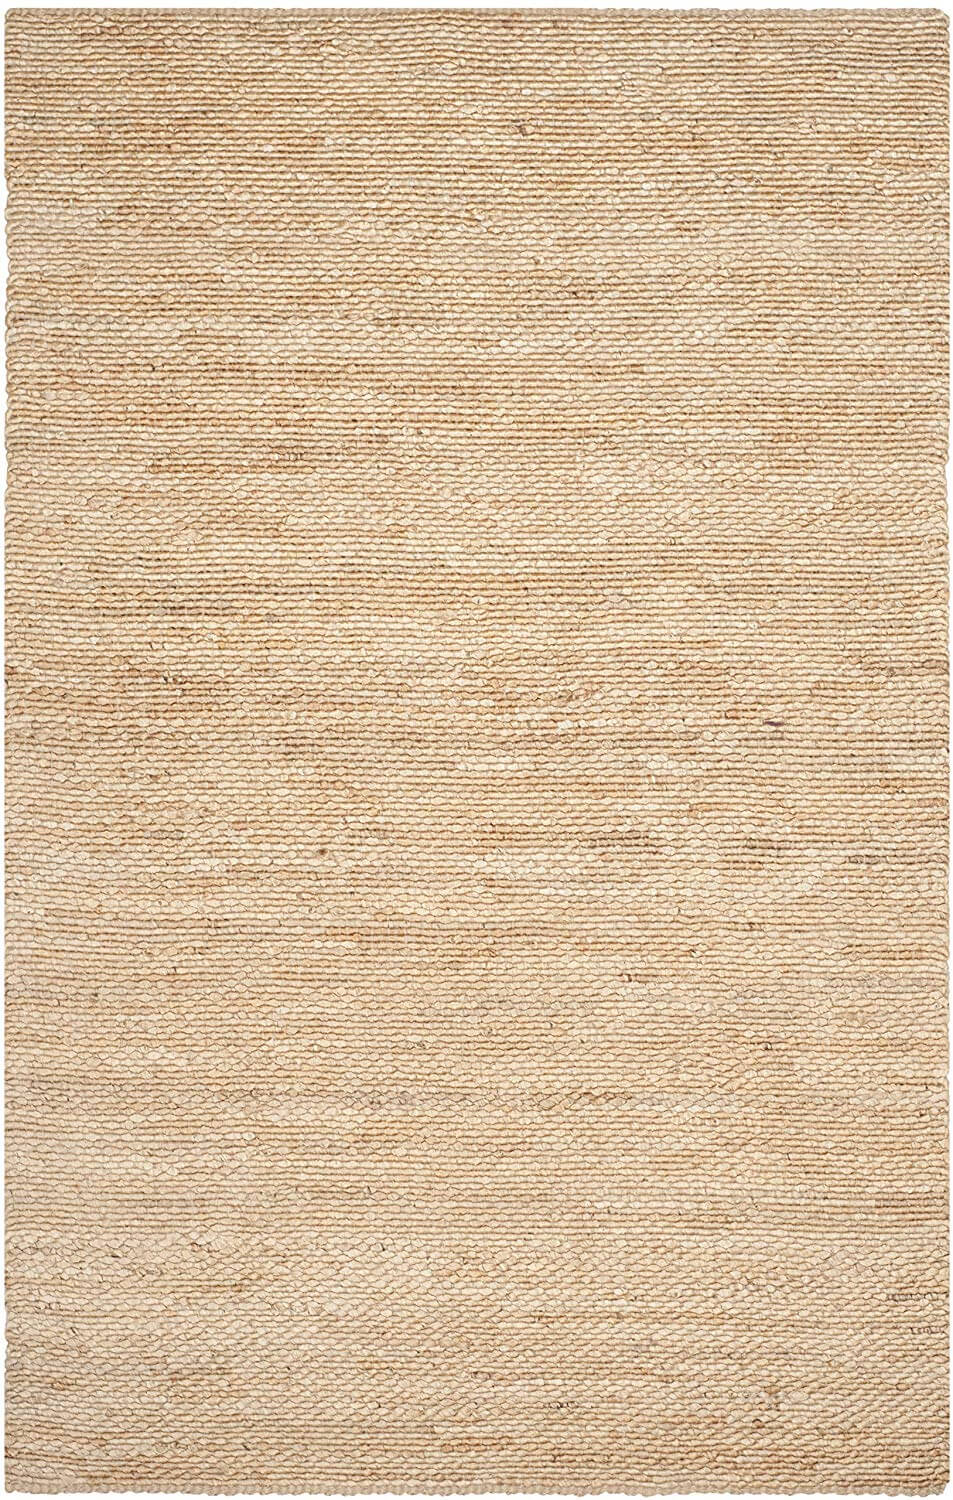 Hand Woven Natural Jute Area Rug